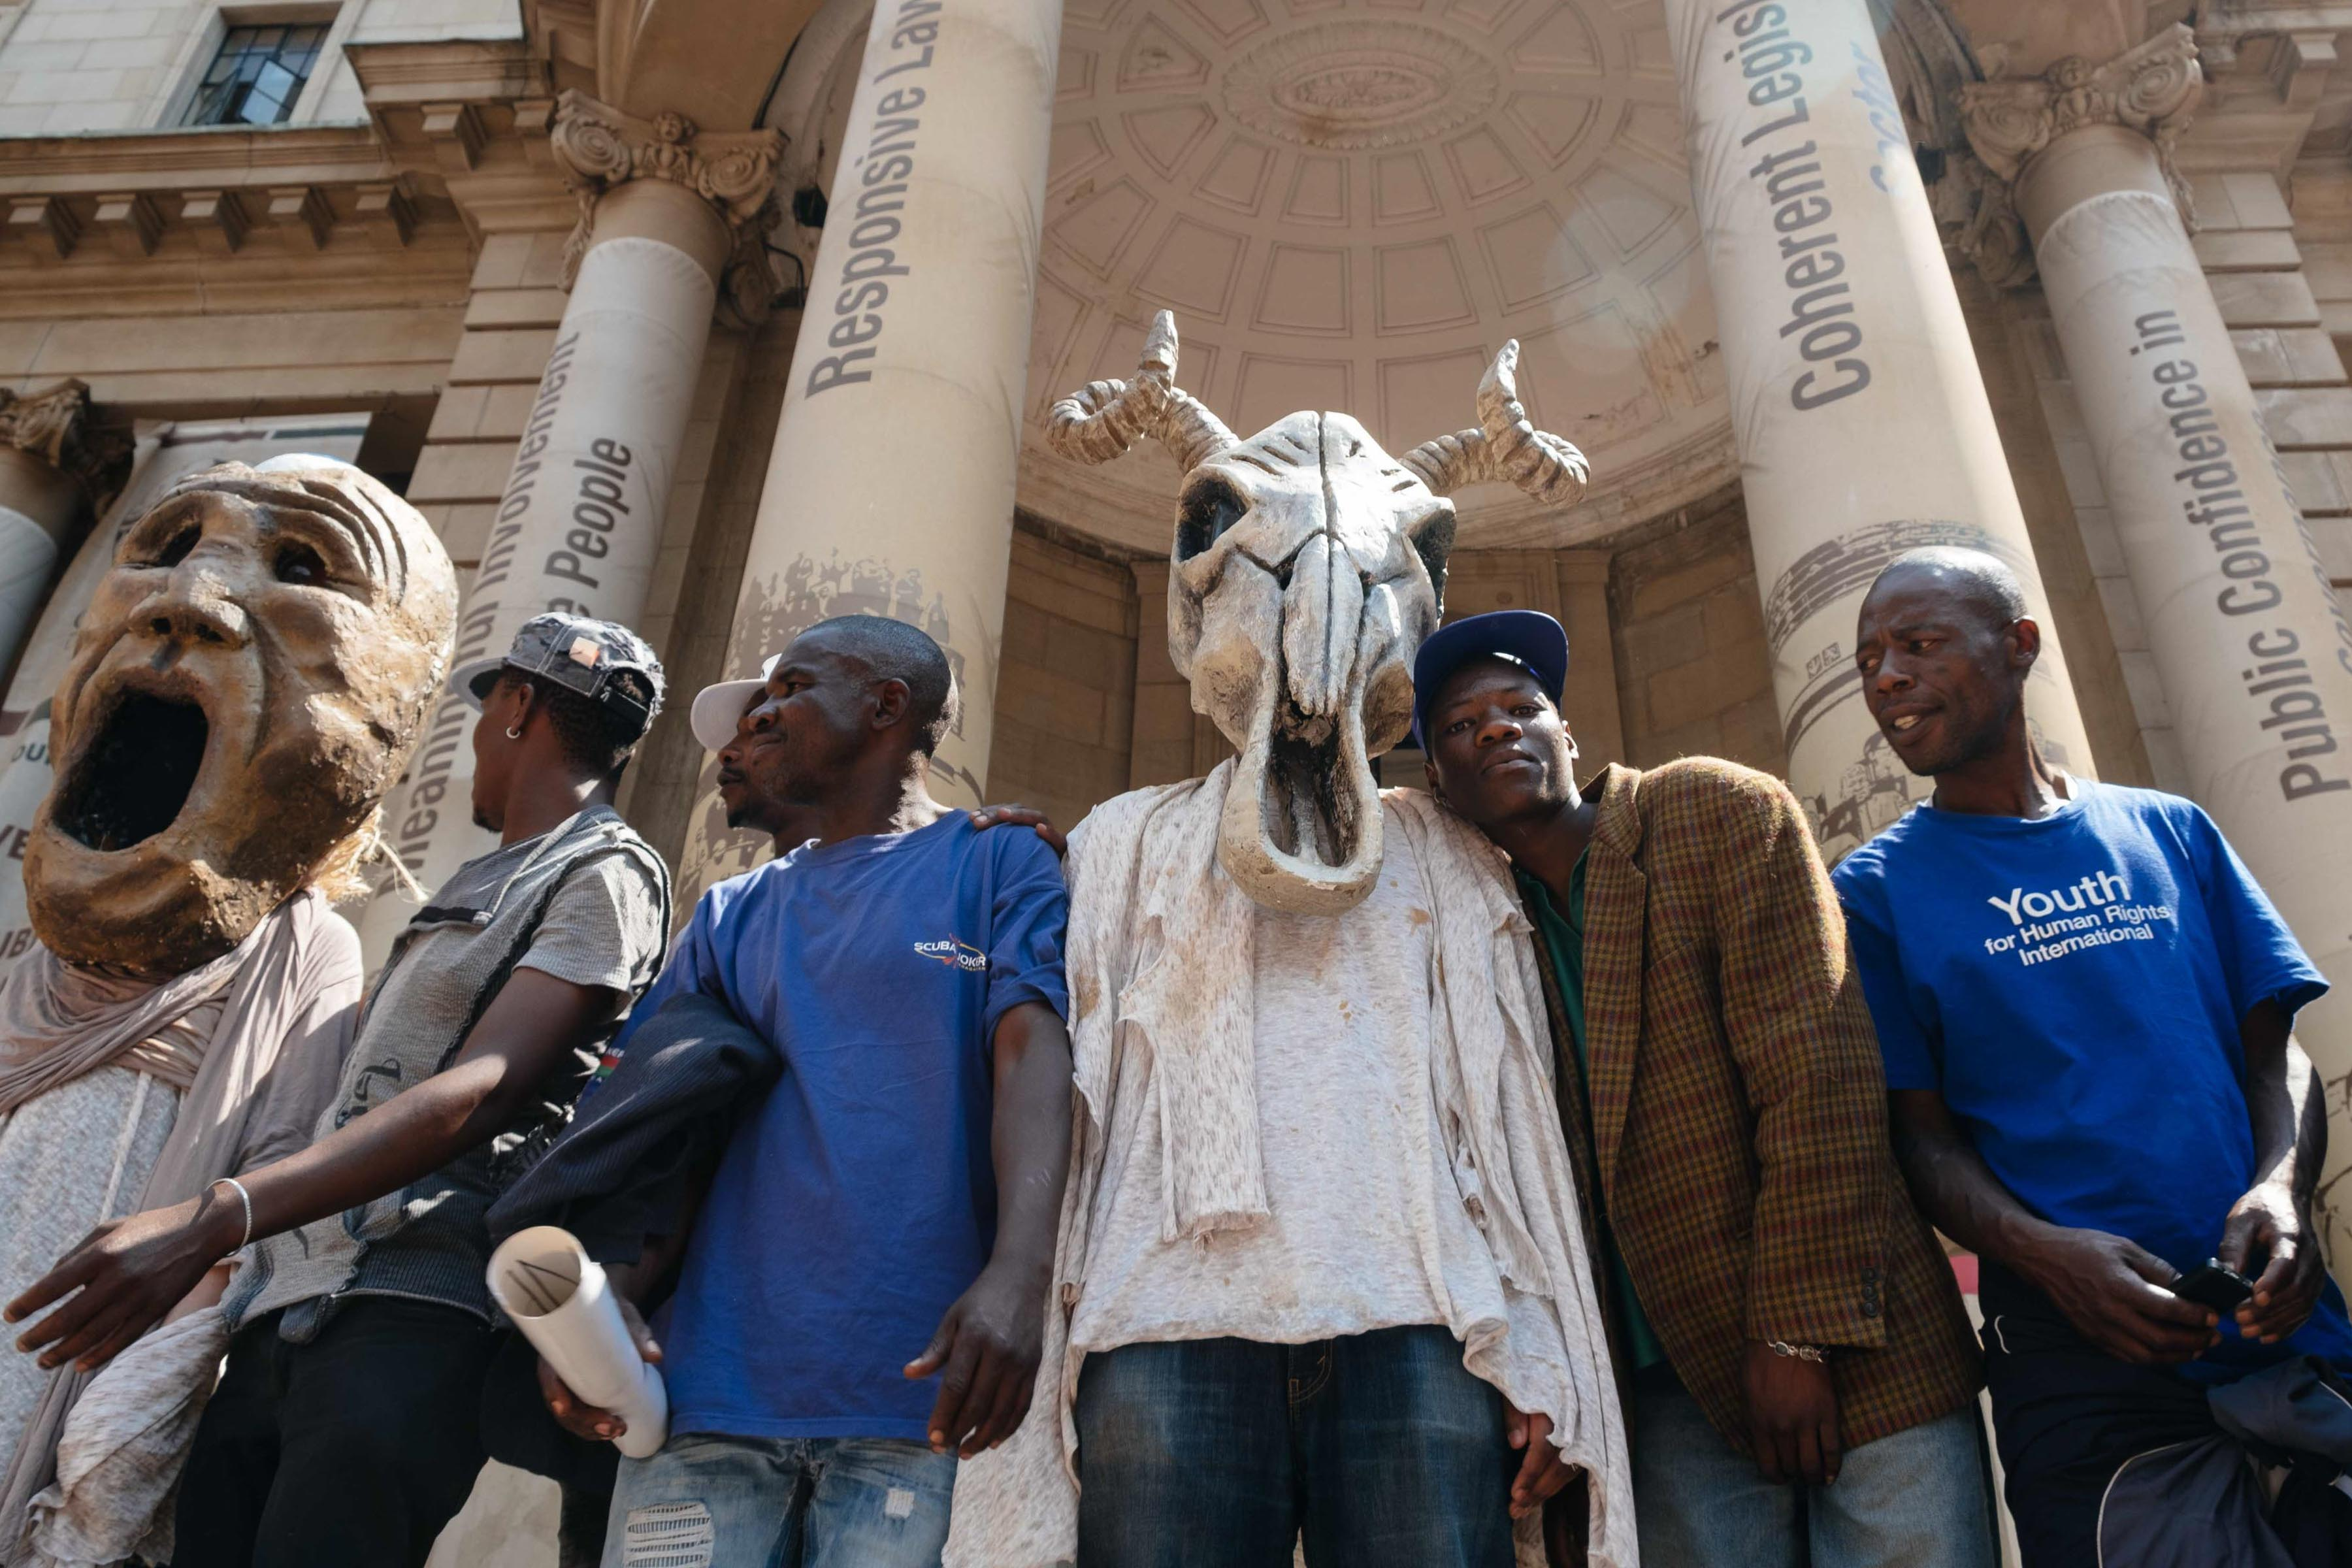 20 September 2019. Protesters at the entrance to the Gauteng Provincial Legislature in Johannesburg, part of the Climate Justice Action March organised by Earthlife Africa, on the same day as the Global Climate Strike and the UN General Assembly. (Photograph by James Puttick)